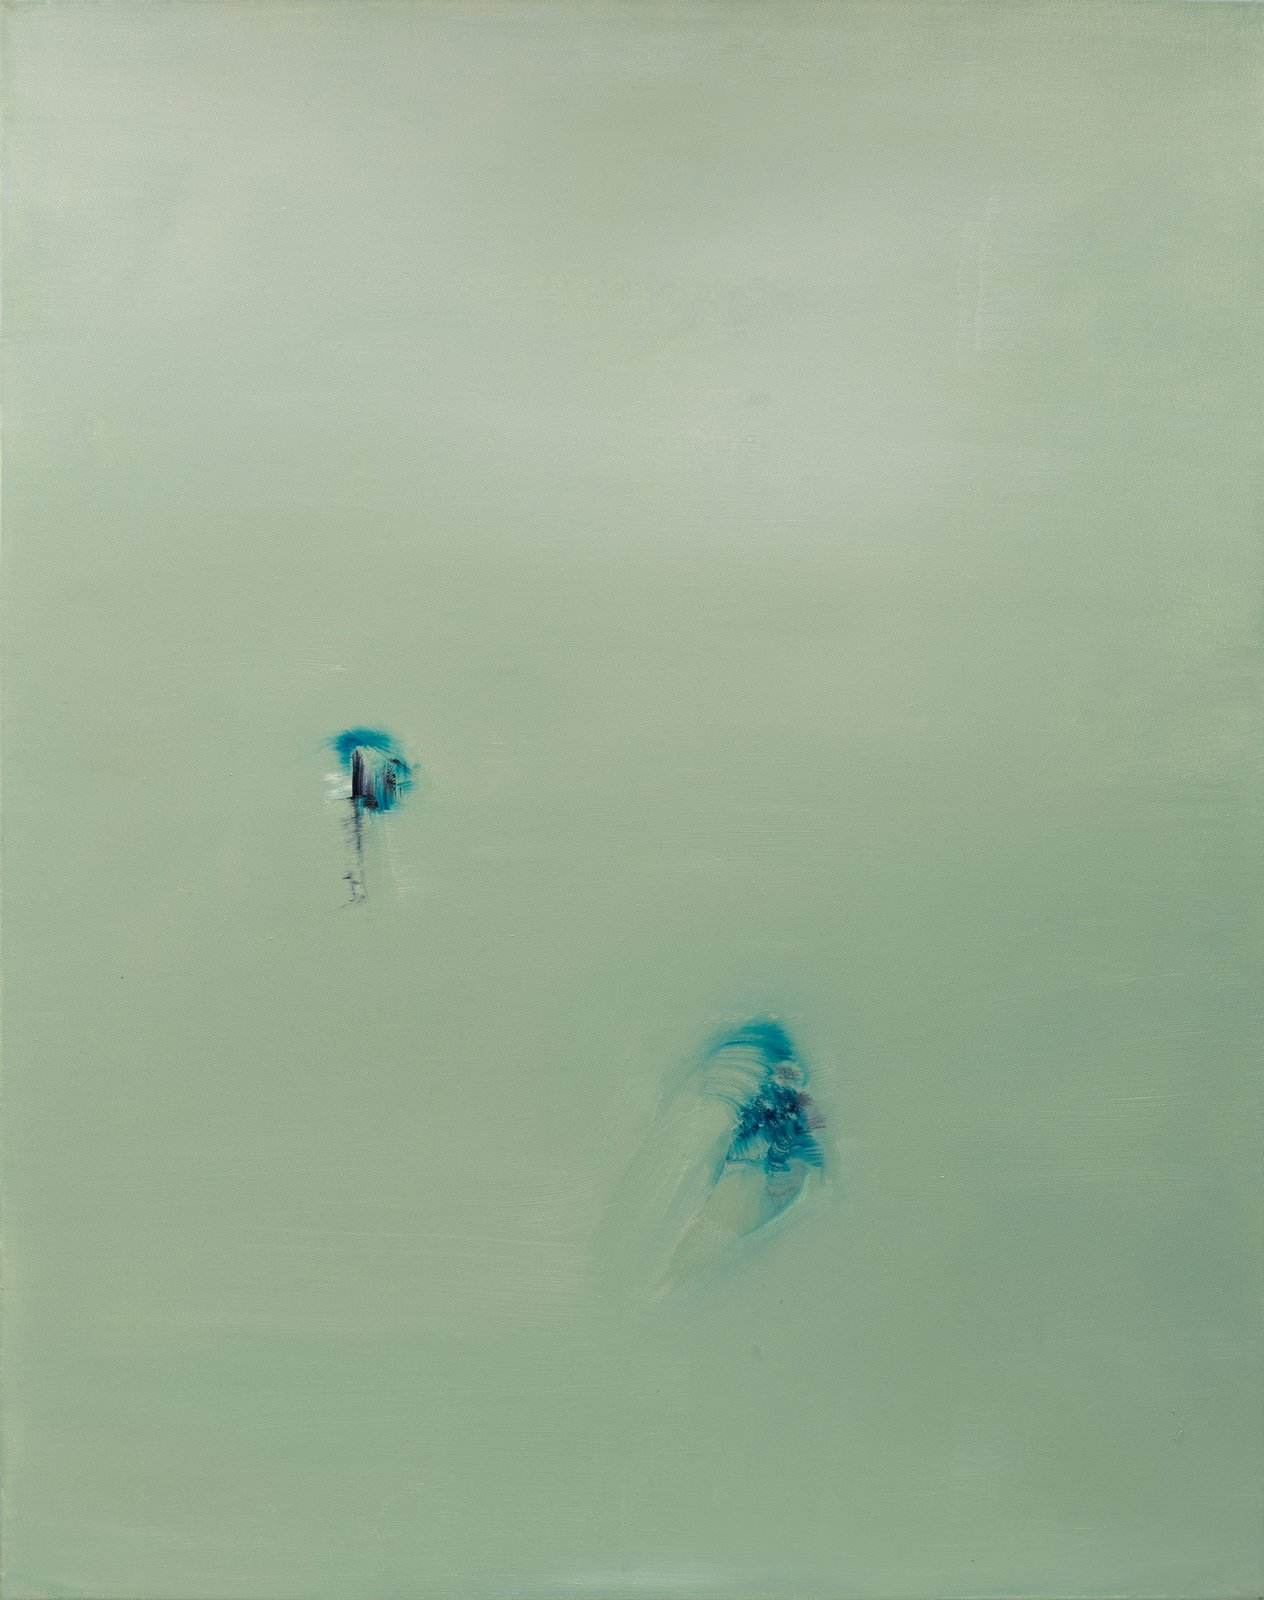 Danielle Voight The Crow's Air, 2014 [DV.17] Oil on Canvas 30 x 24 in.